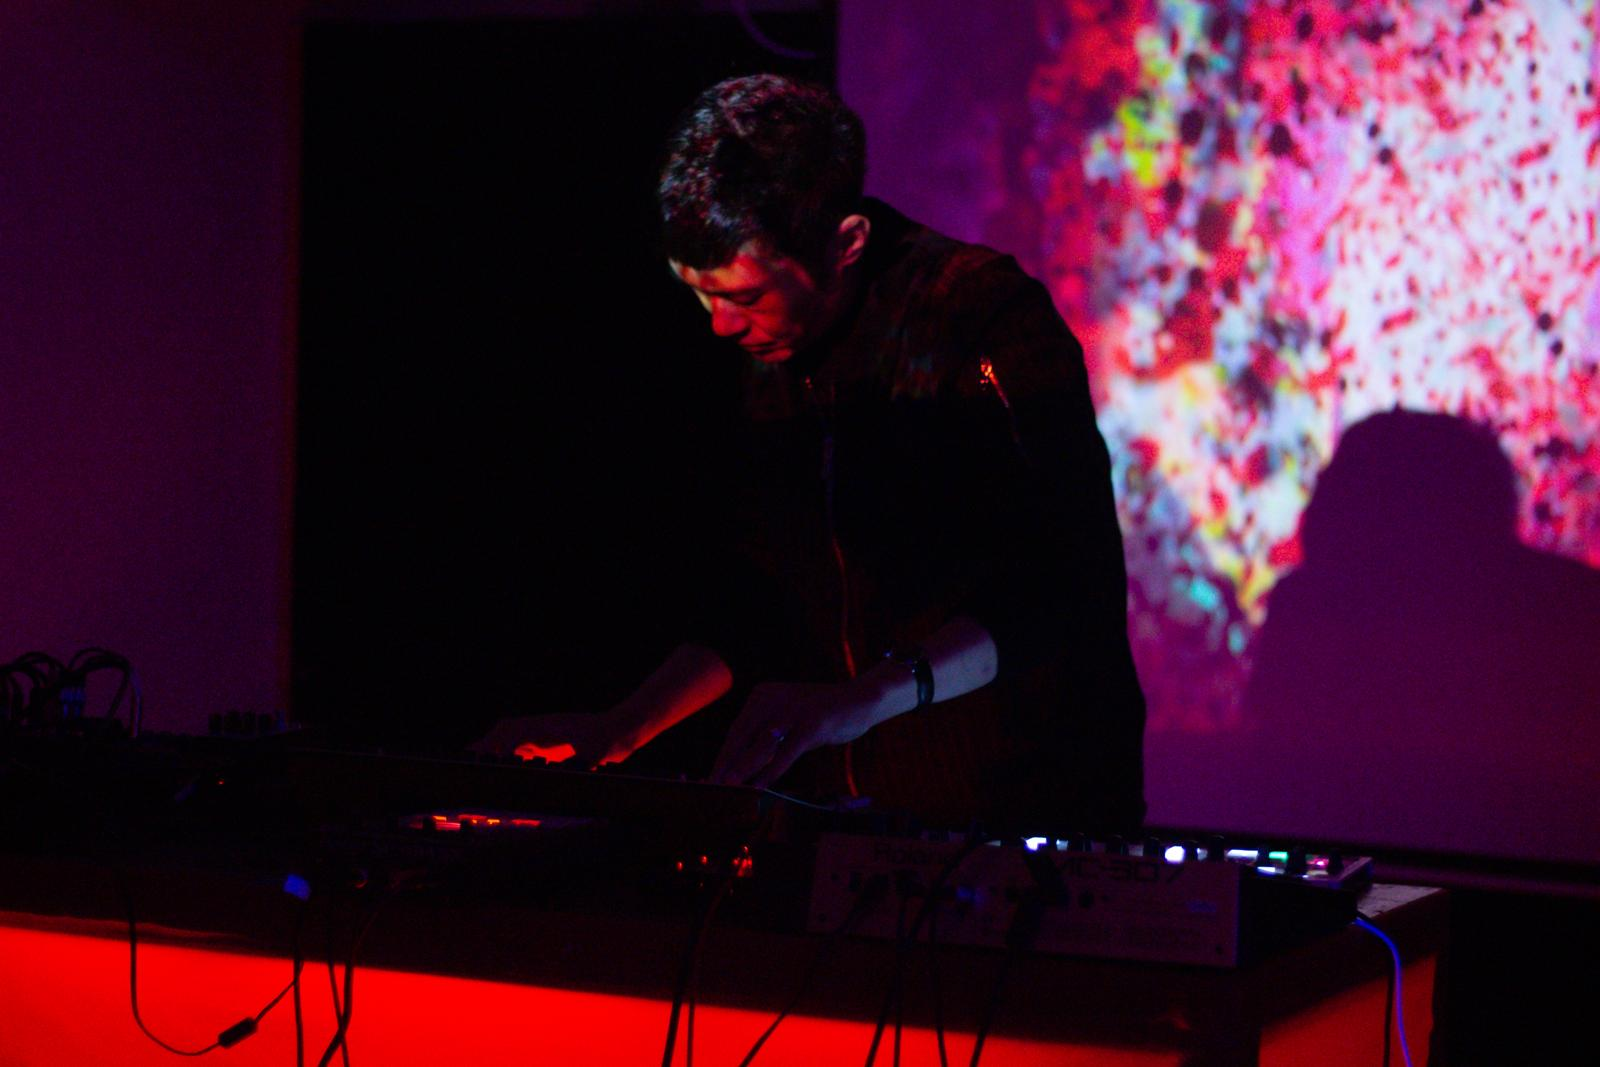 INJURY AMBIENT LIVE SET at DOWN/ UNDER SPACE, SYDNEY AUSTRALIA MARCH 2019